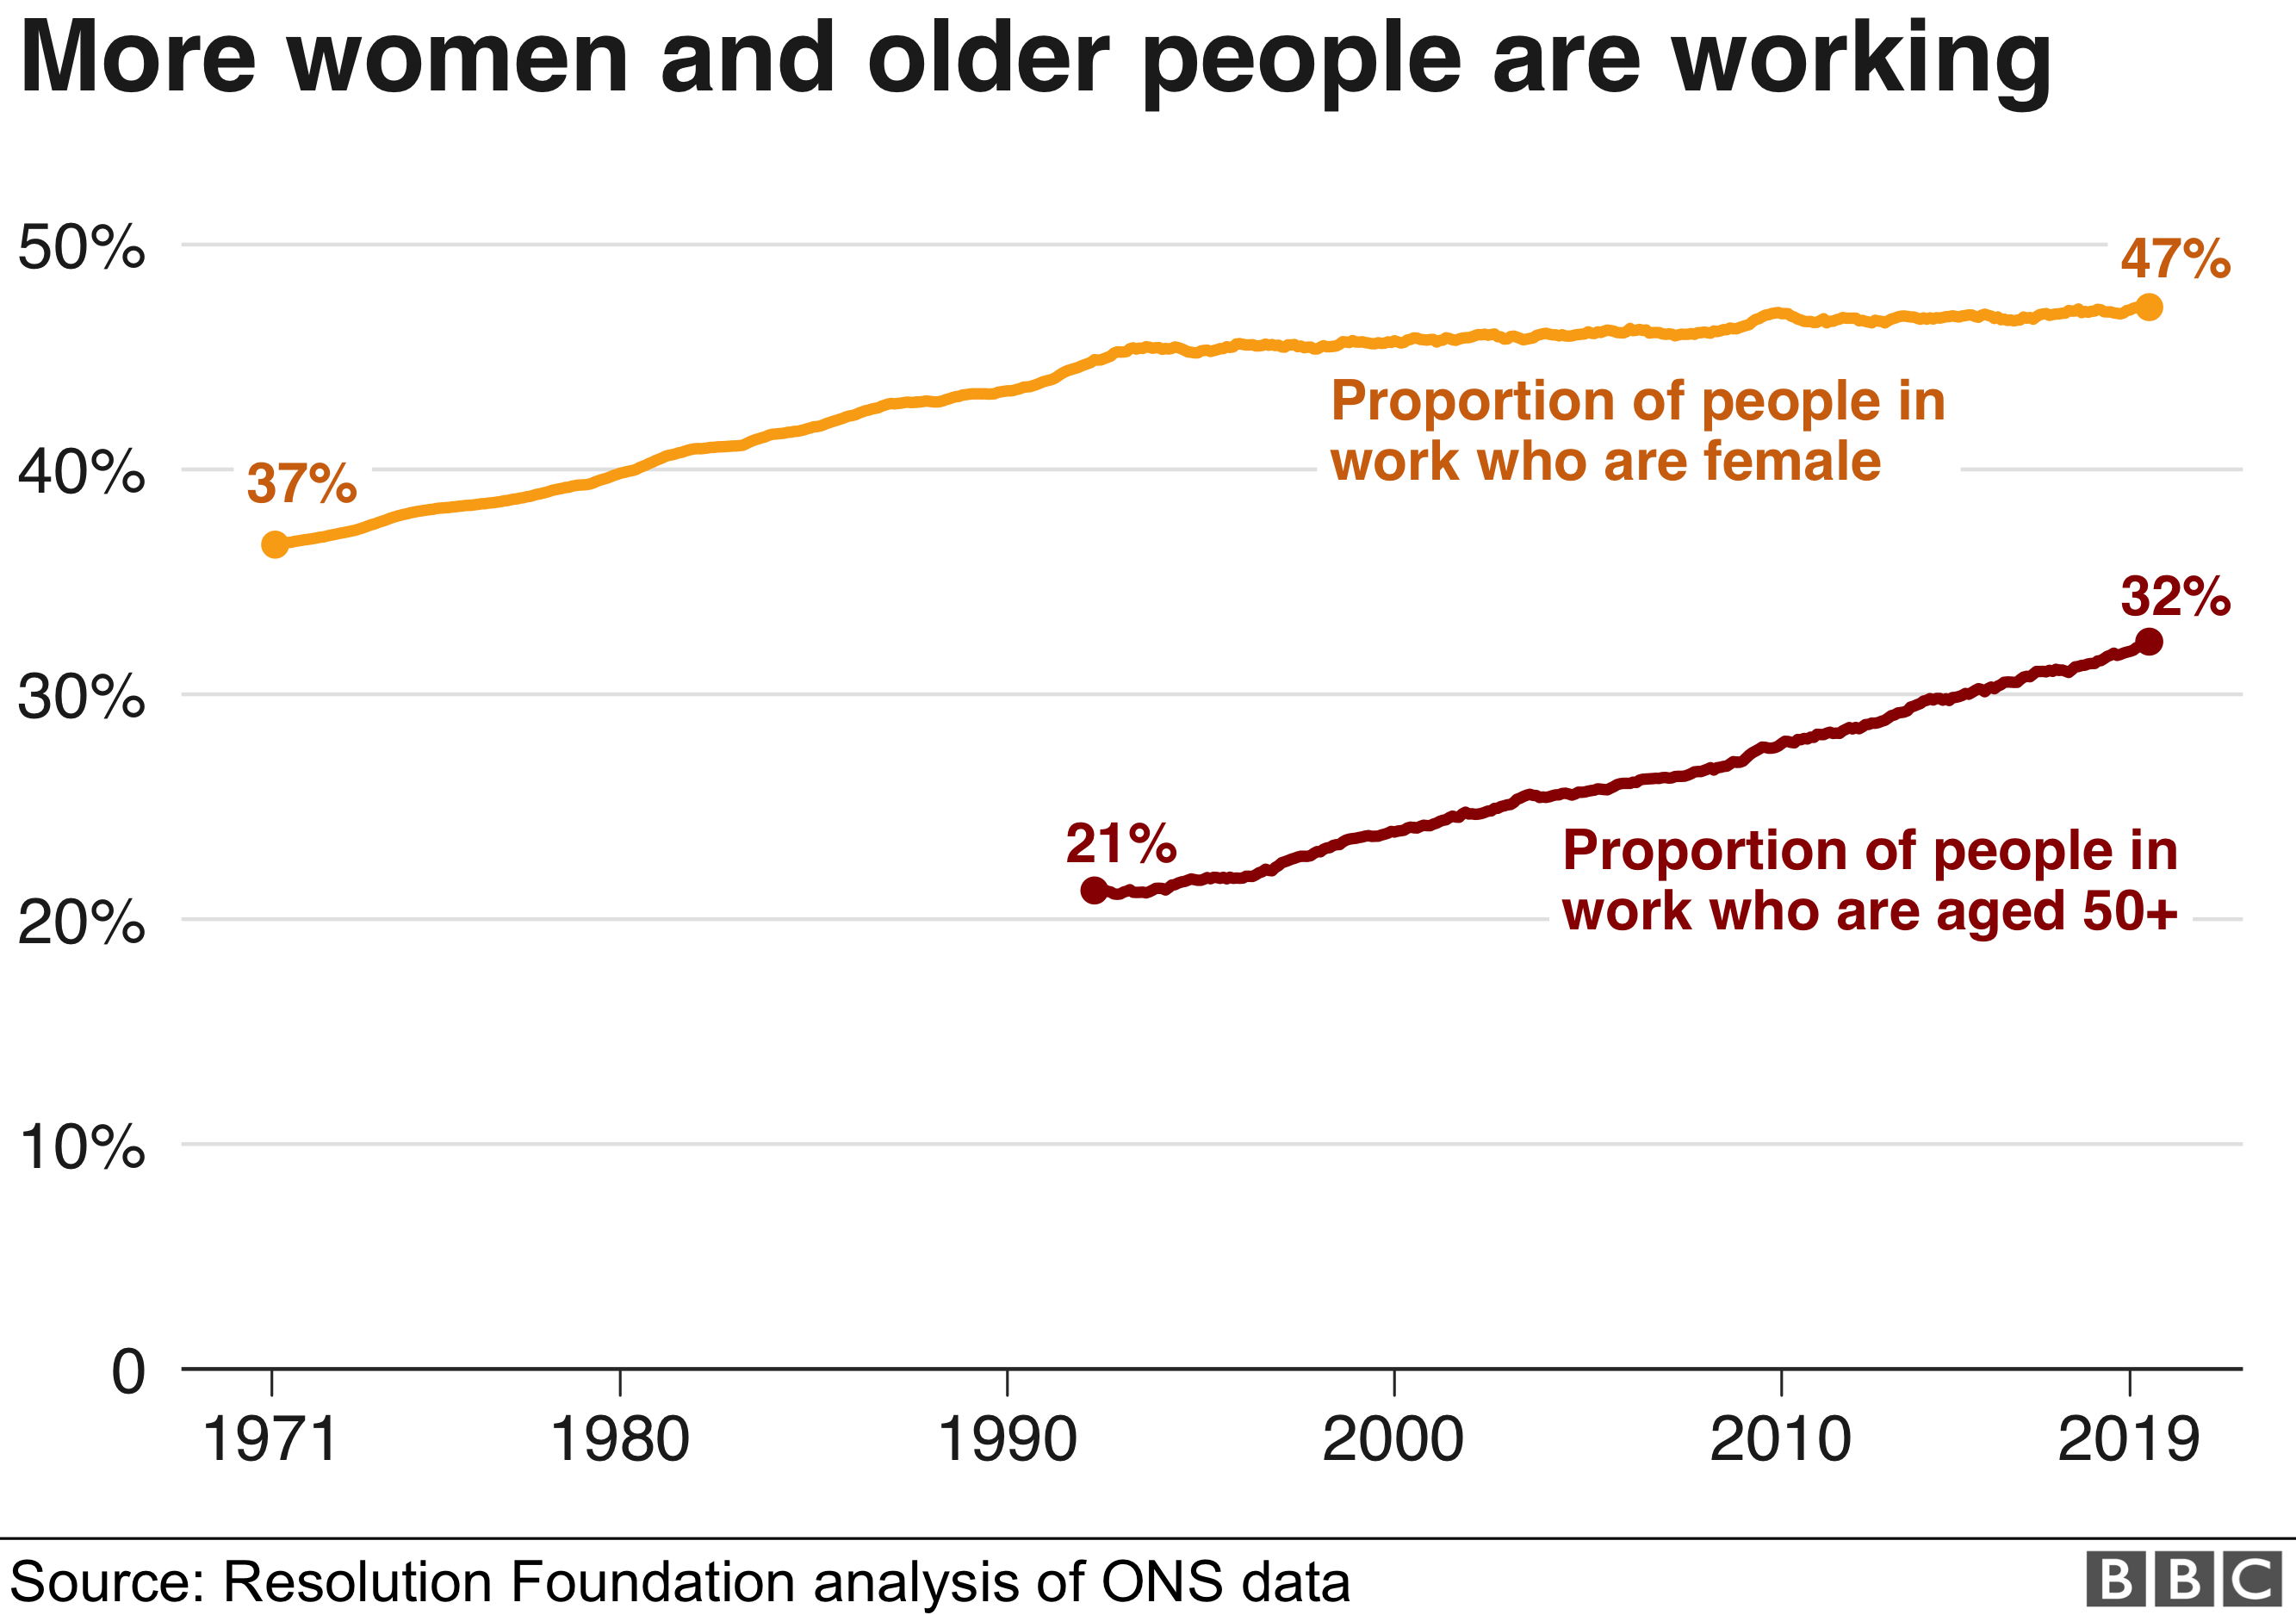 More women and older people are working